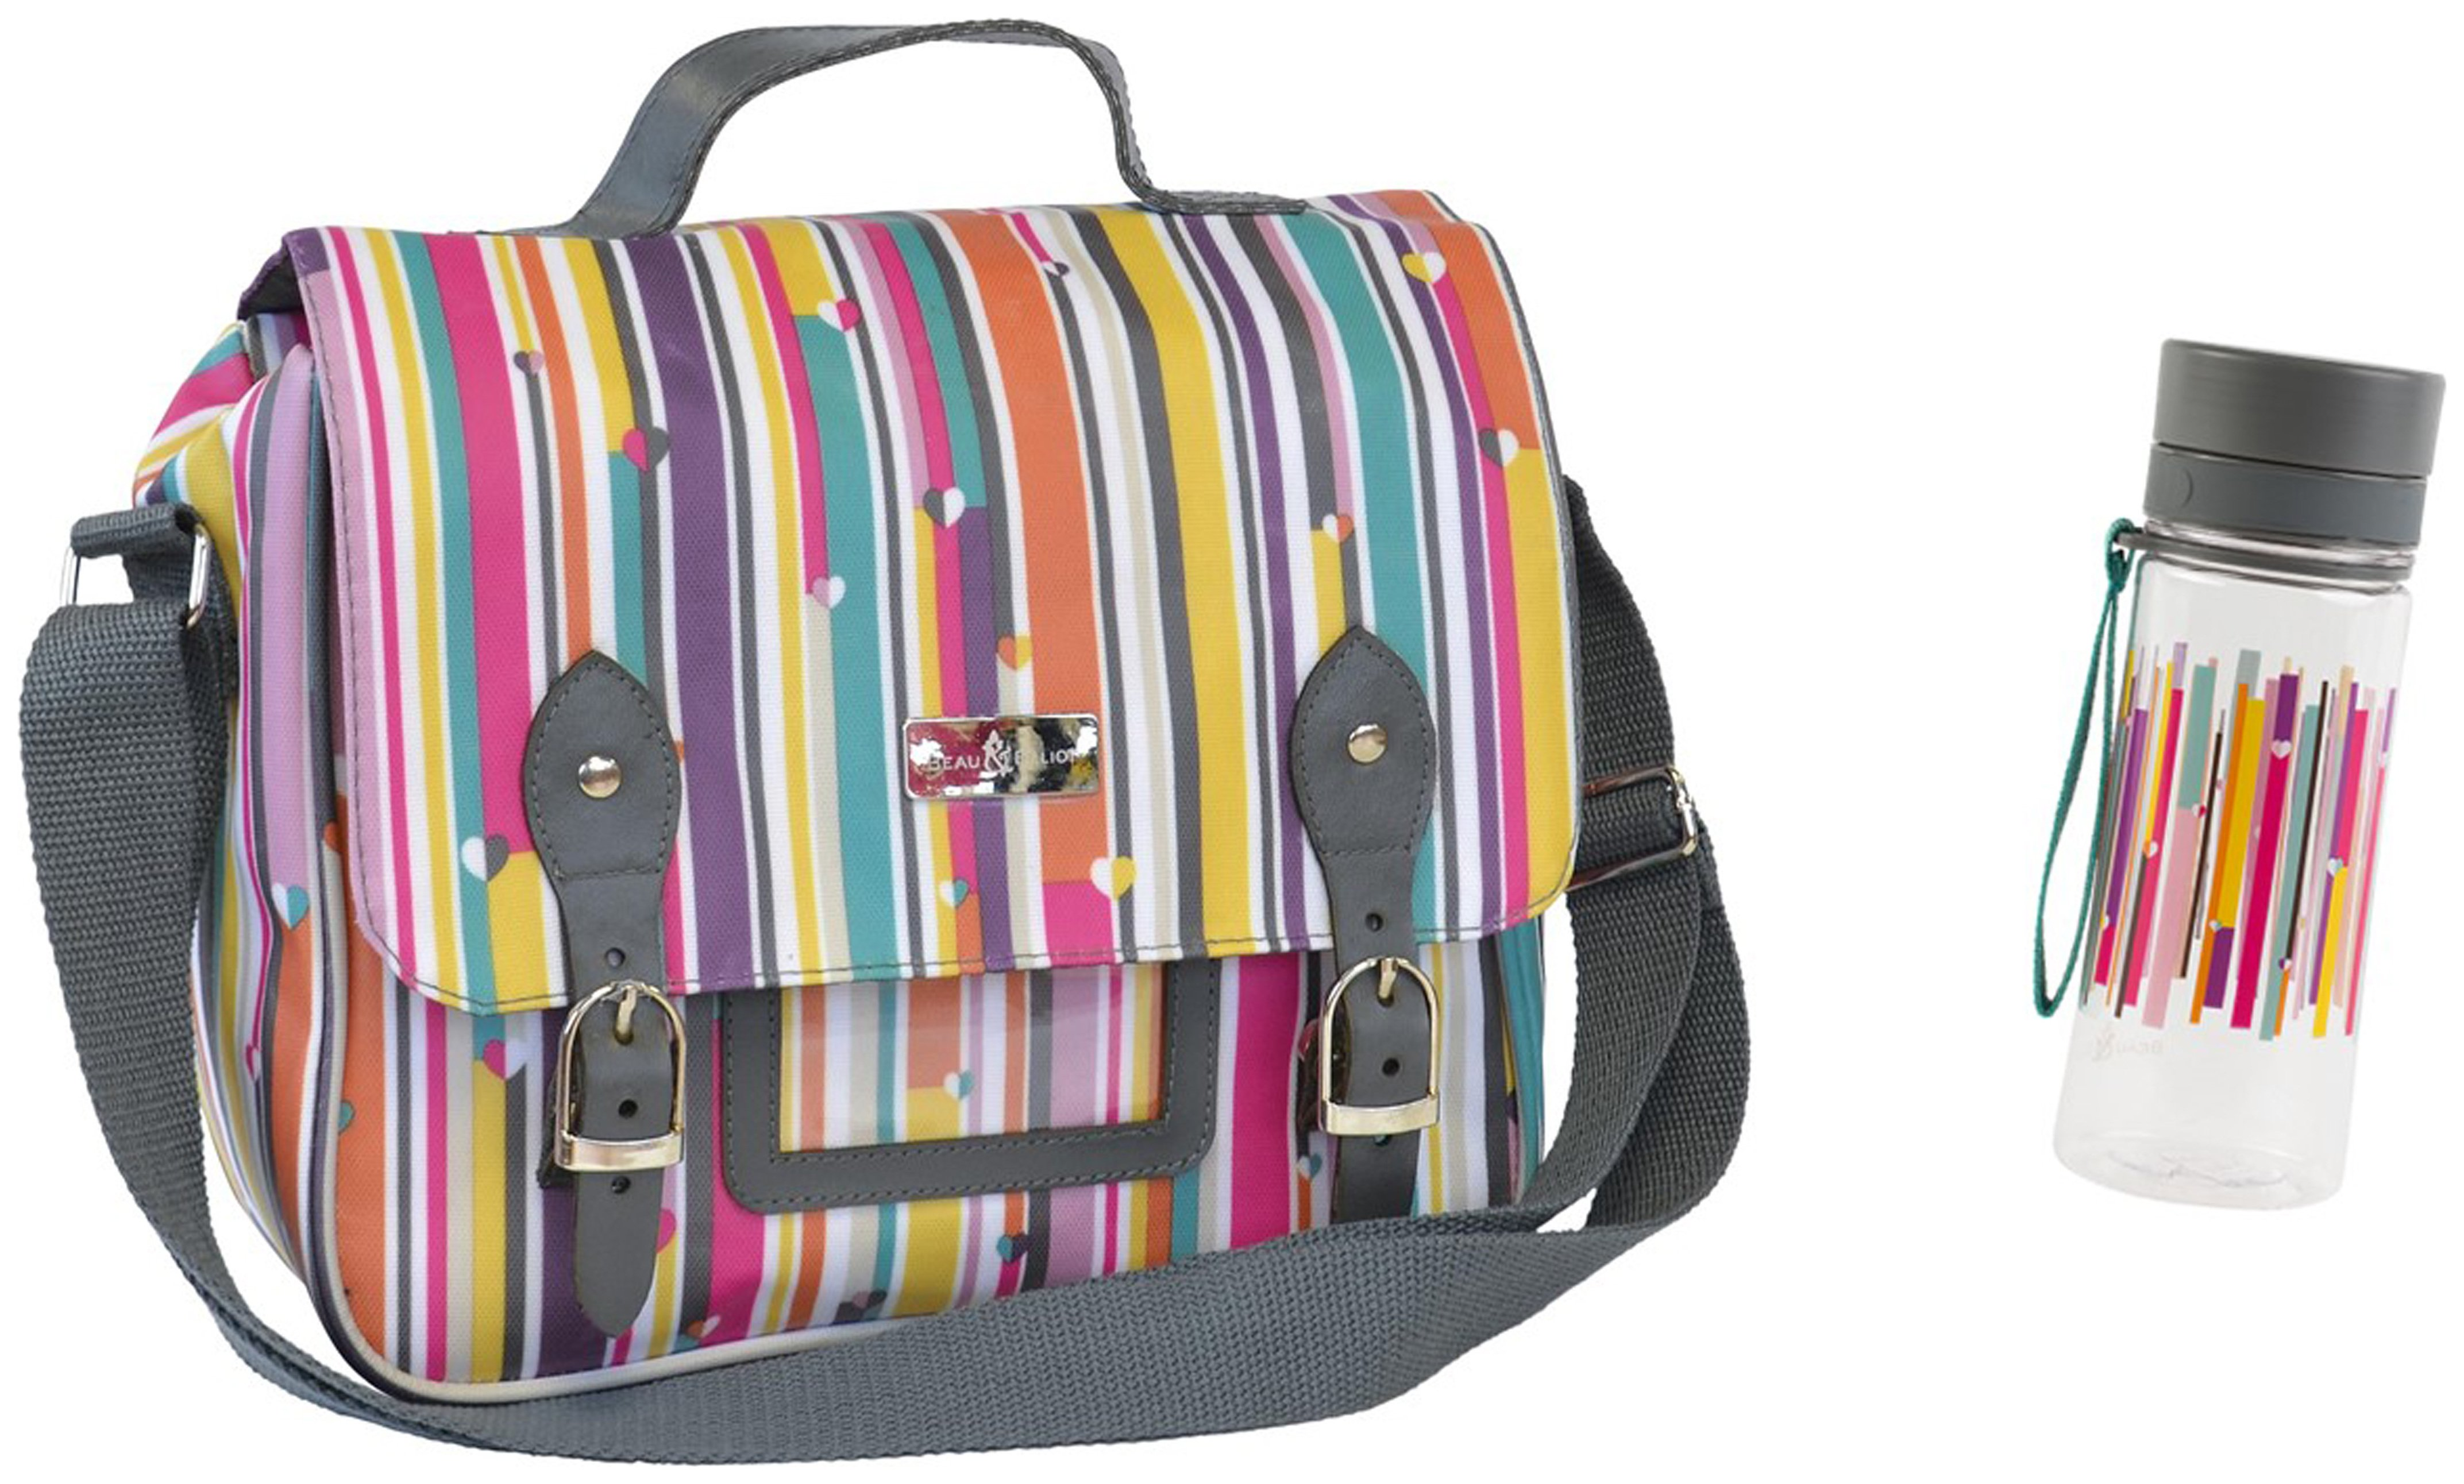 Image of Beau and Elliot Linear Lunch Satchel and Bottle.